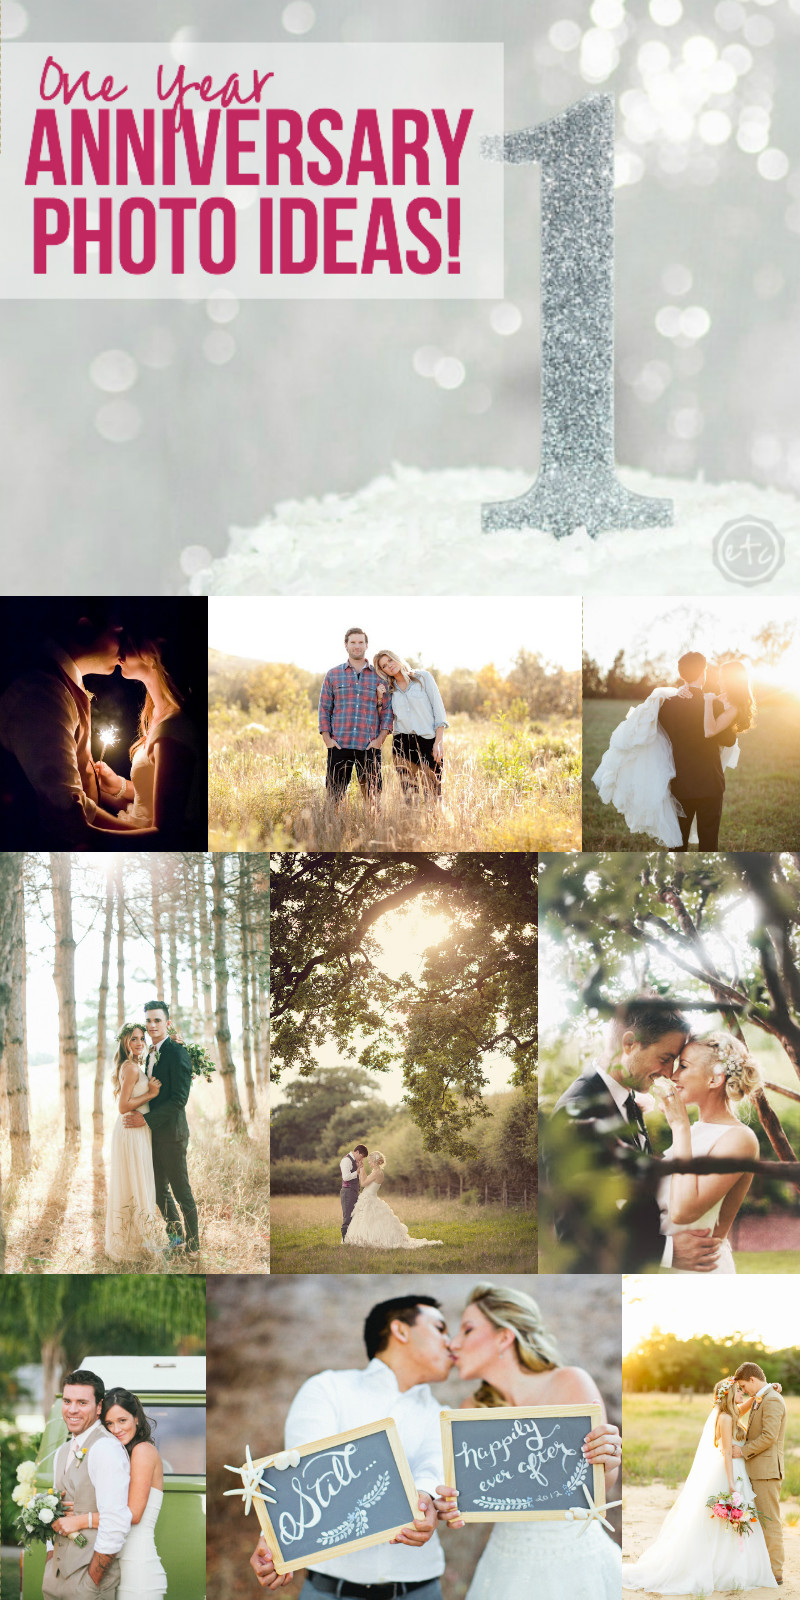 1 Year Anniversary Photo Ideas with Happily Ever After Etc